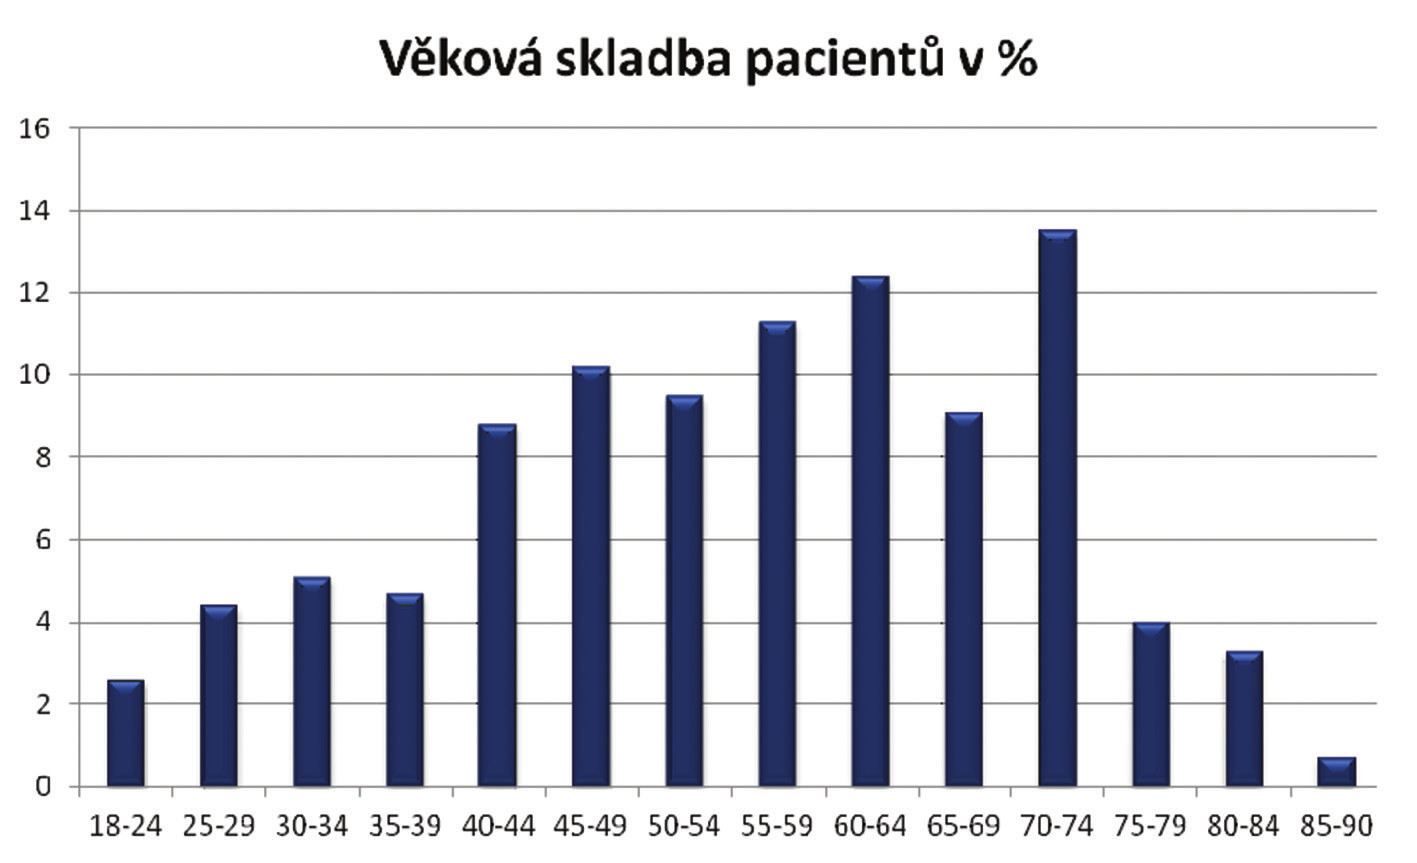 Věková distribuce pacientů